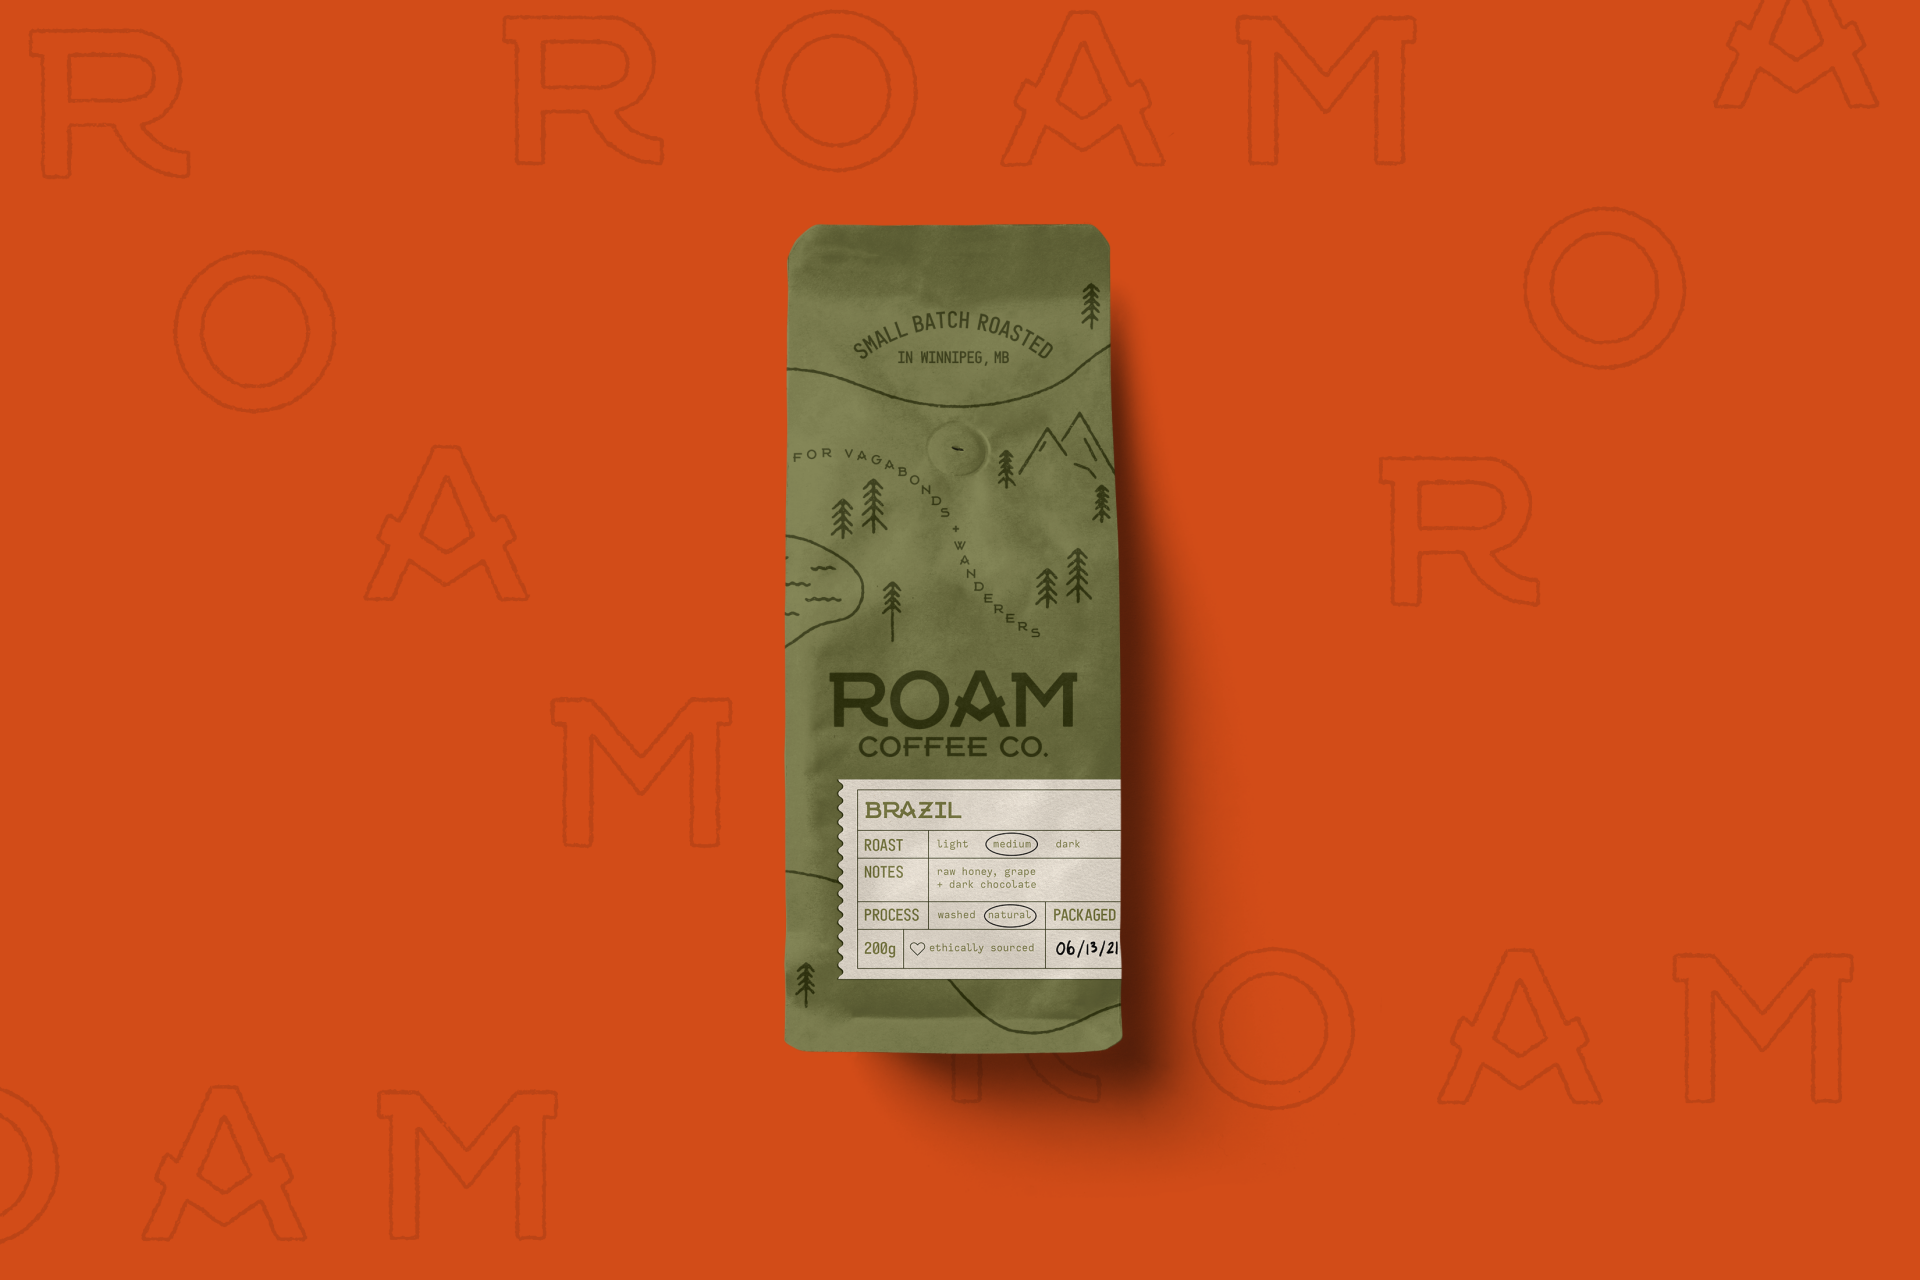 """An image of a bag of coffee from the fictional brand """"Roam Coffee Co."""" The coffee bag features"""